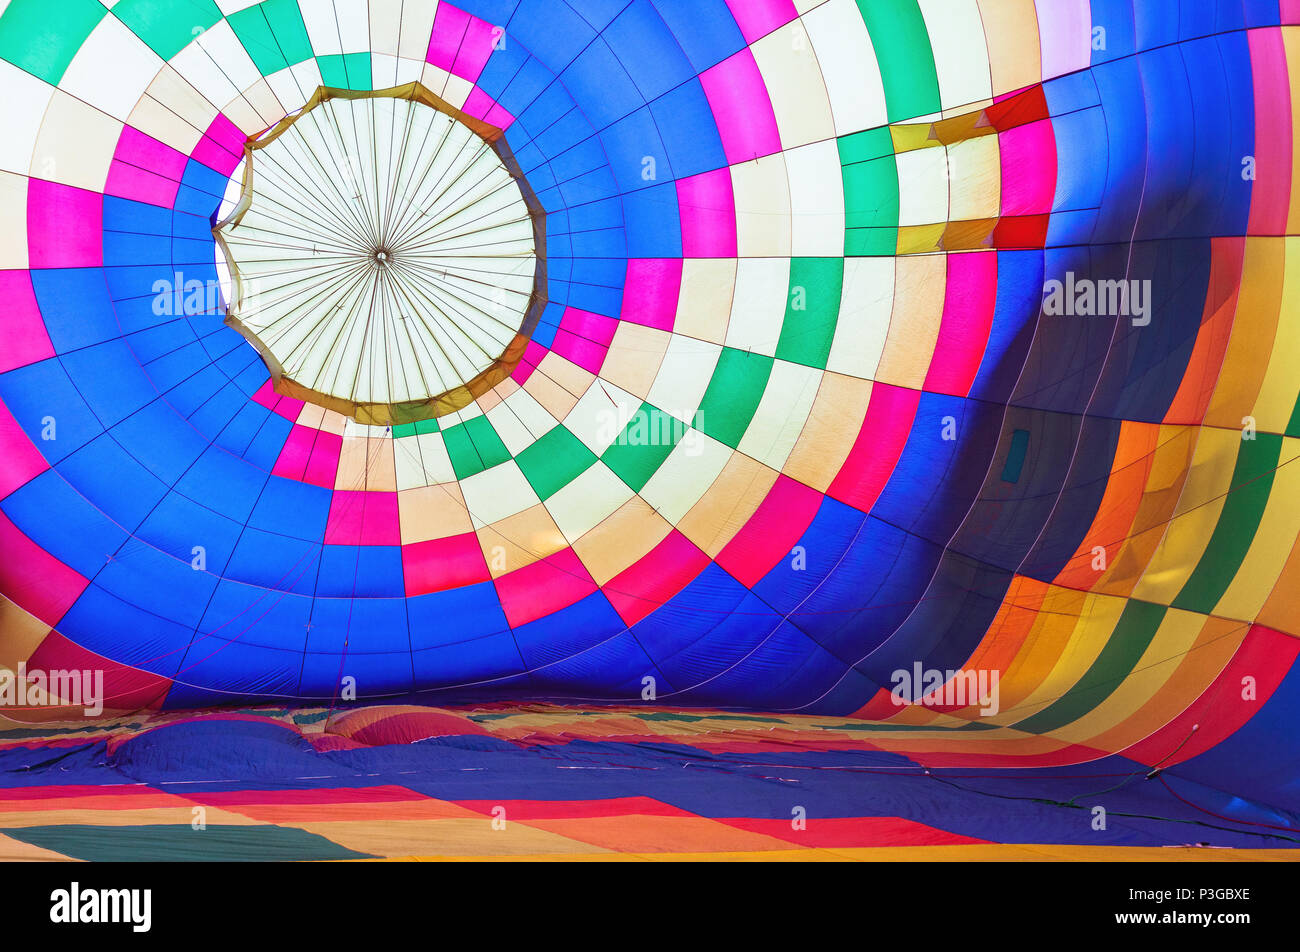 Bright abstract multicolored background, hot air balloon view from inside - Stock Image